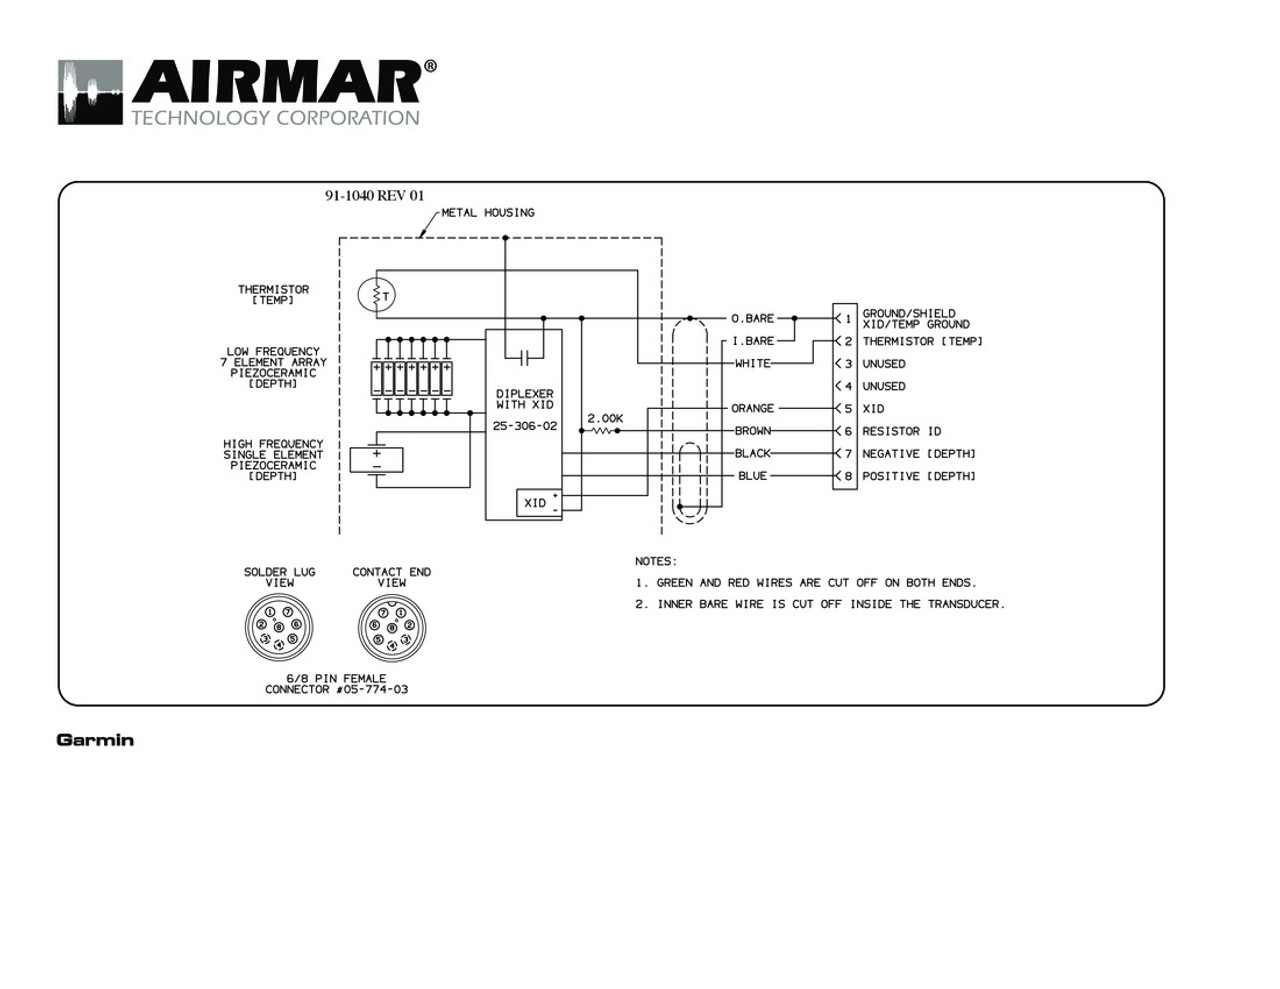 garmin 4 pin transducer wiring diagram 2002 jeep liberty 8 all airmar 1kw d t blue bottle marine connector